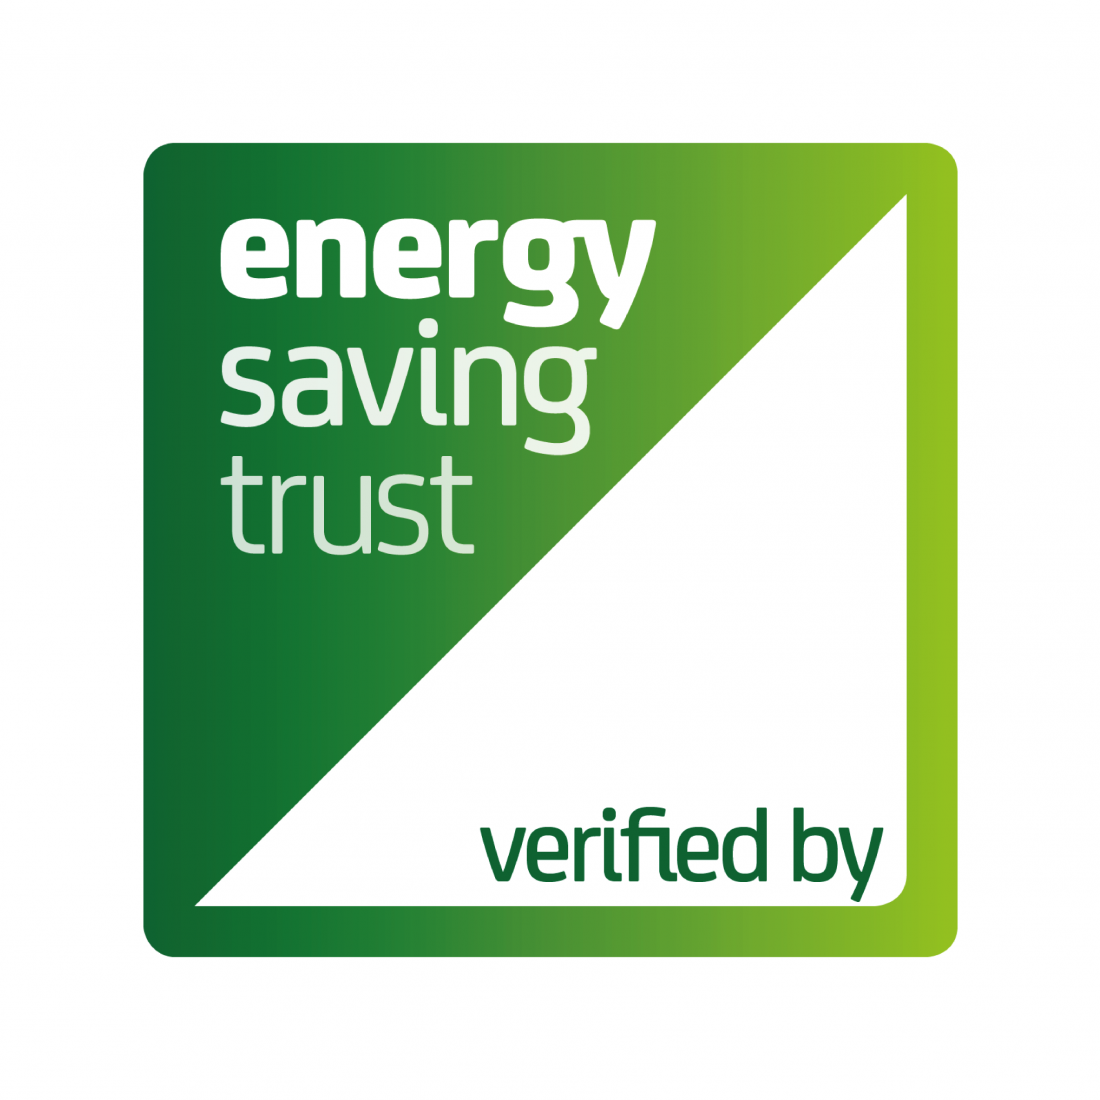 Energy Saving Trust and Q-Bot